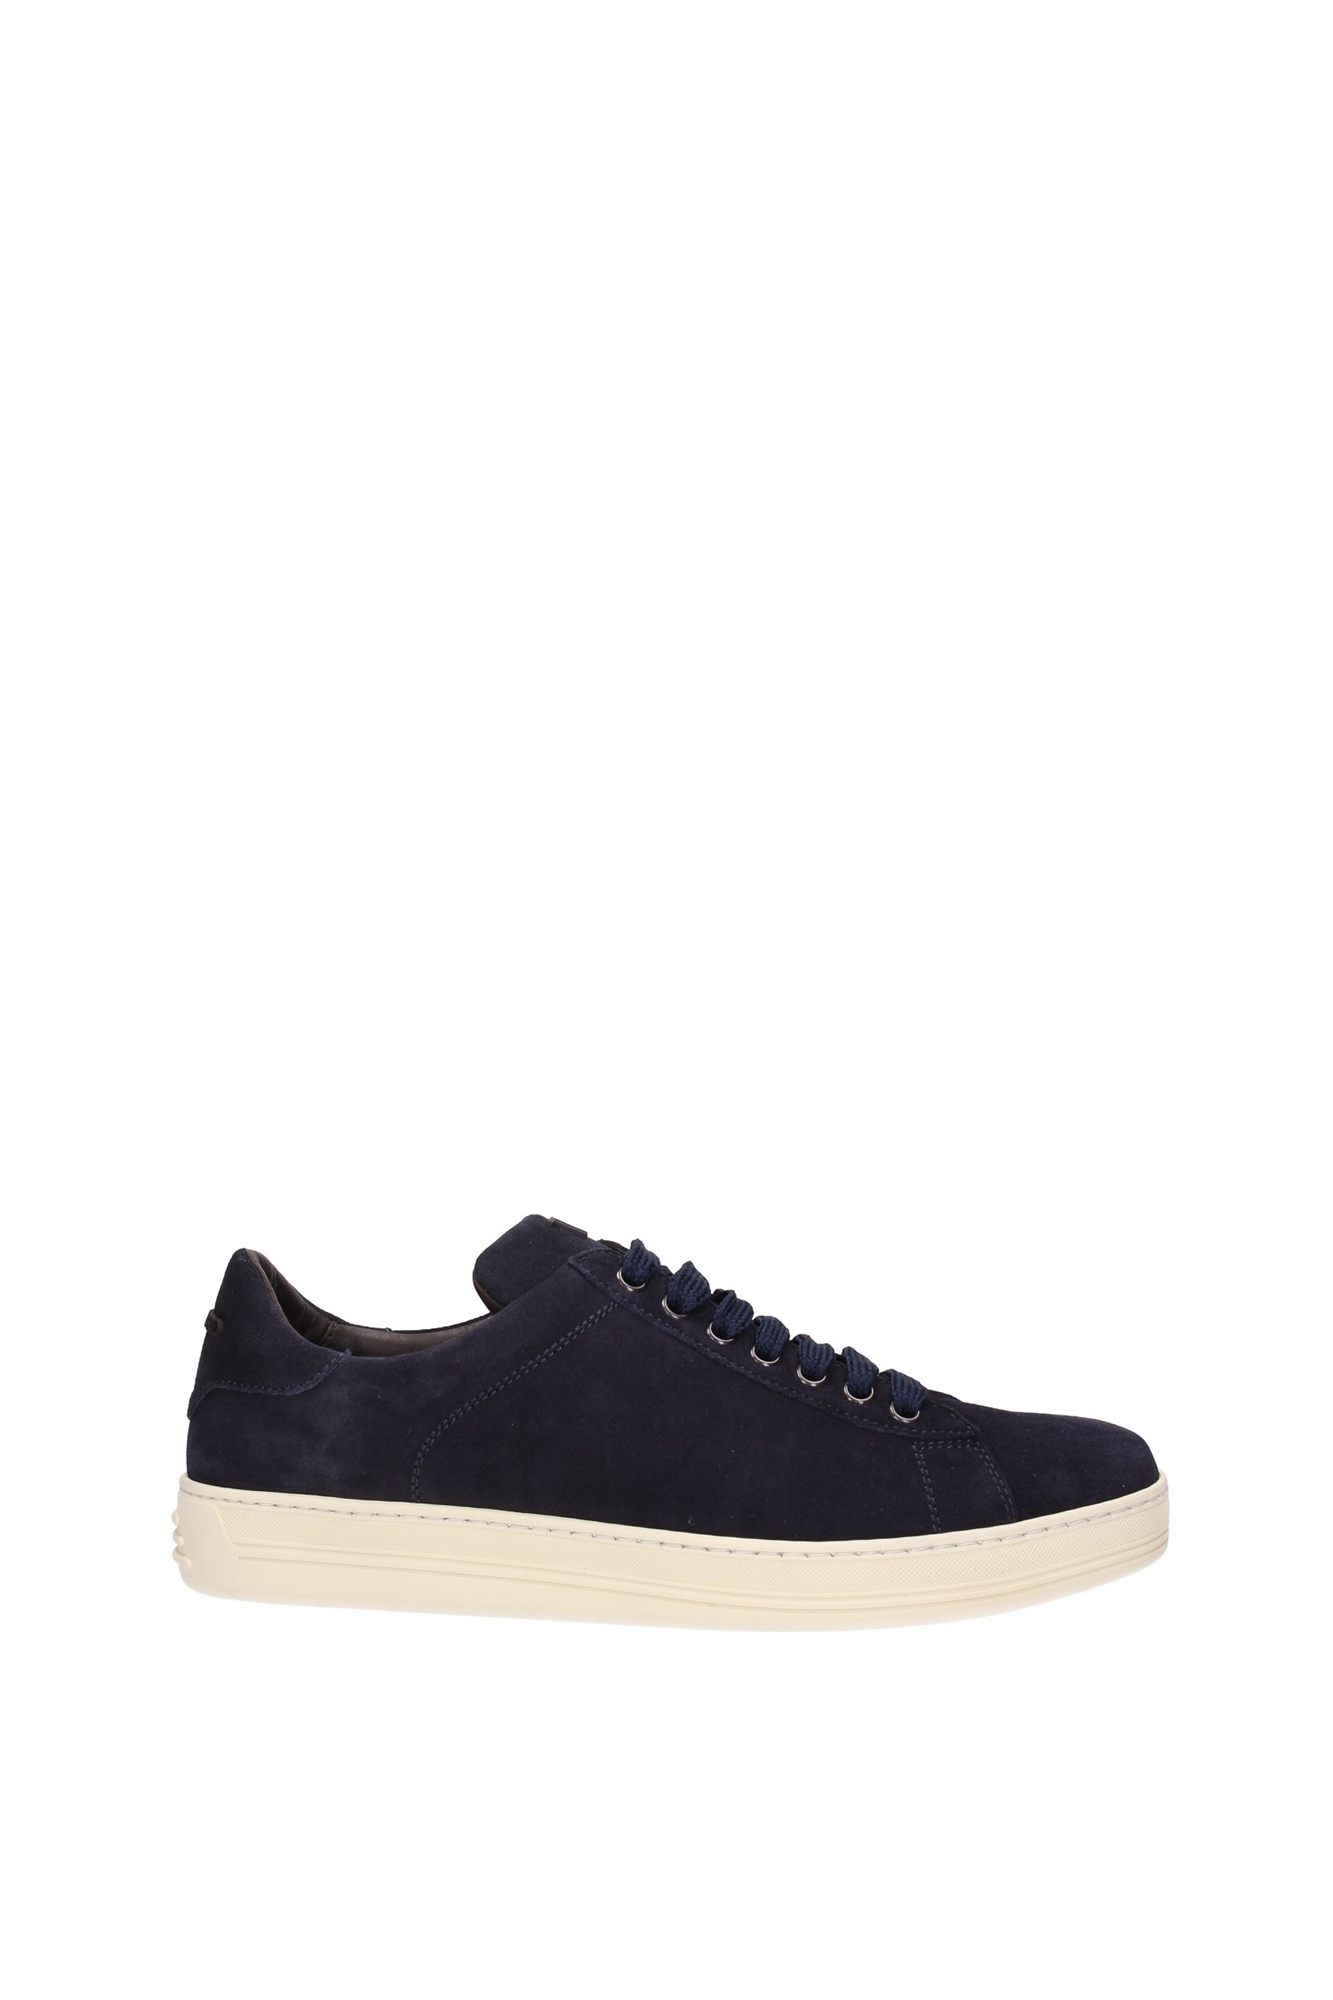 Sneakers Tom Ford Men Suede Blue 51J0866TCGRBLU